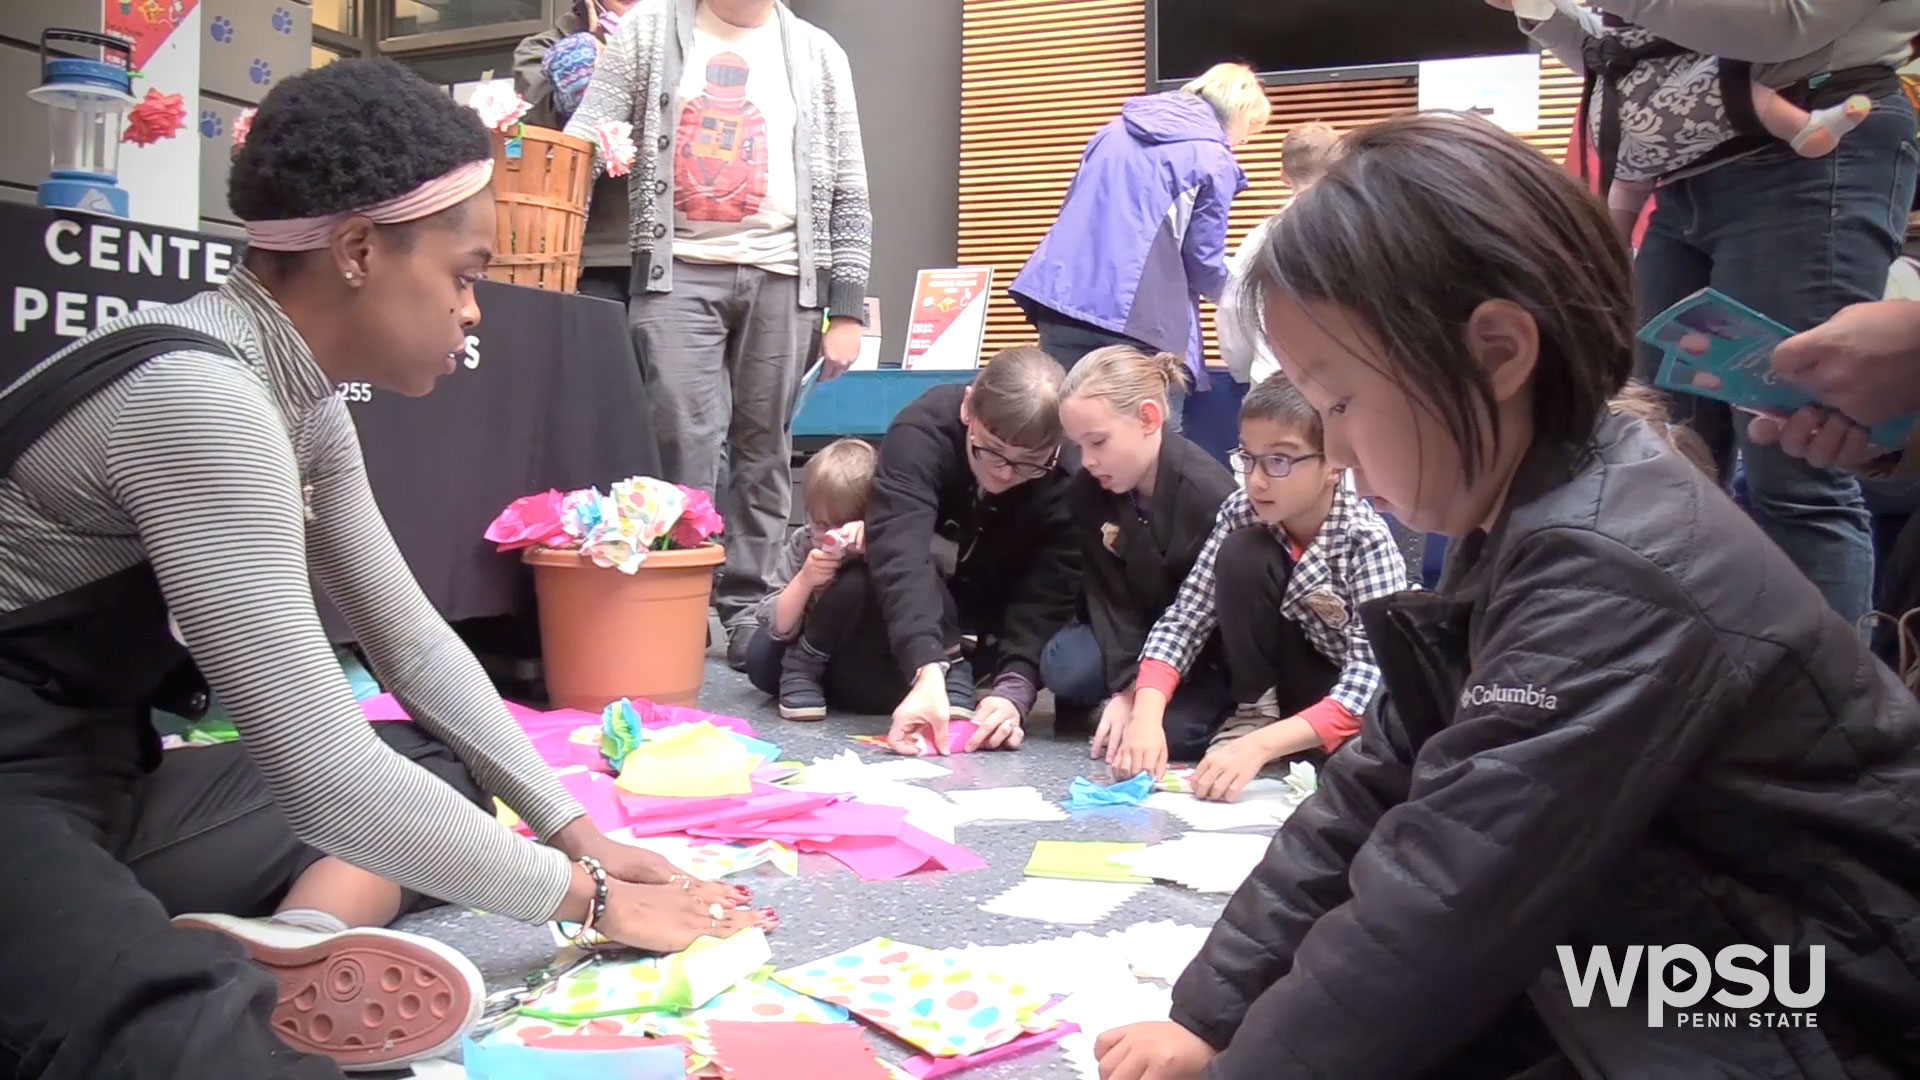 children participating in craft activities at WPSU studios